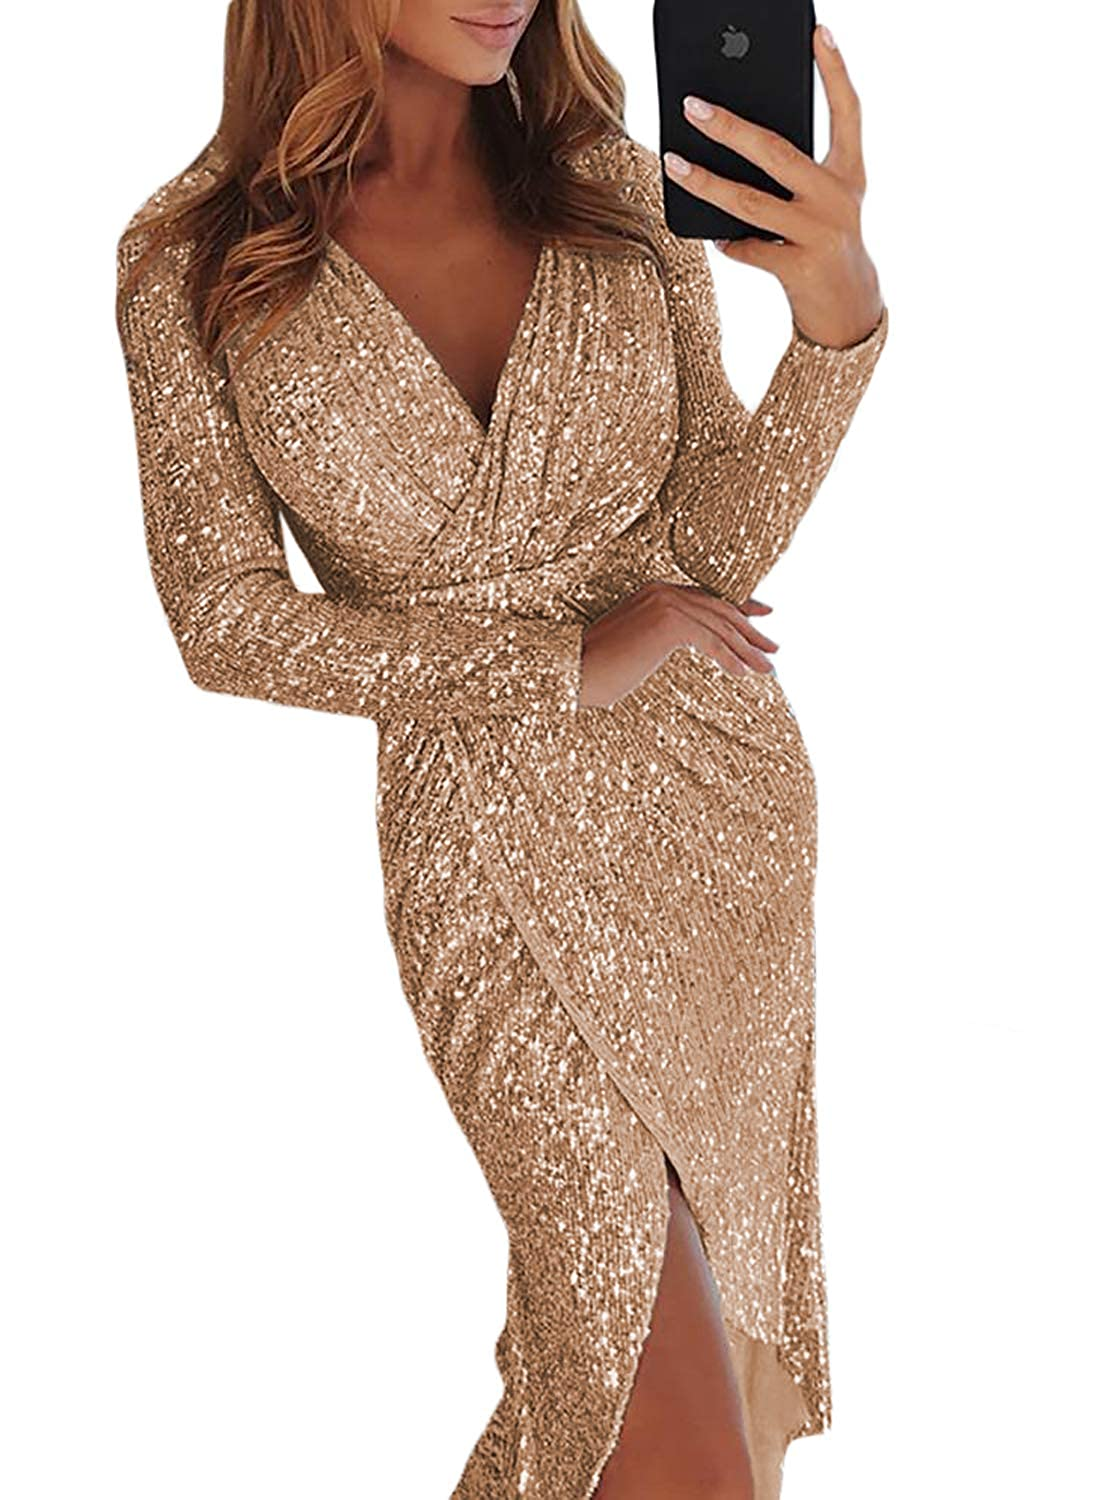 788f8bc6 Elapsy Womens Sexy Deep V Neck Sequins Wrapped Ruched Irregular Party  Cocktail Dress at Amazon Women's Clothing store: